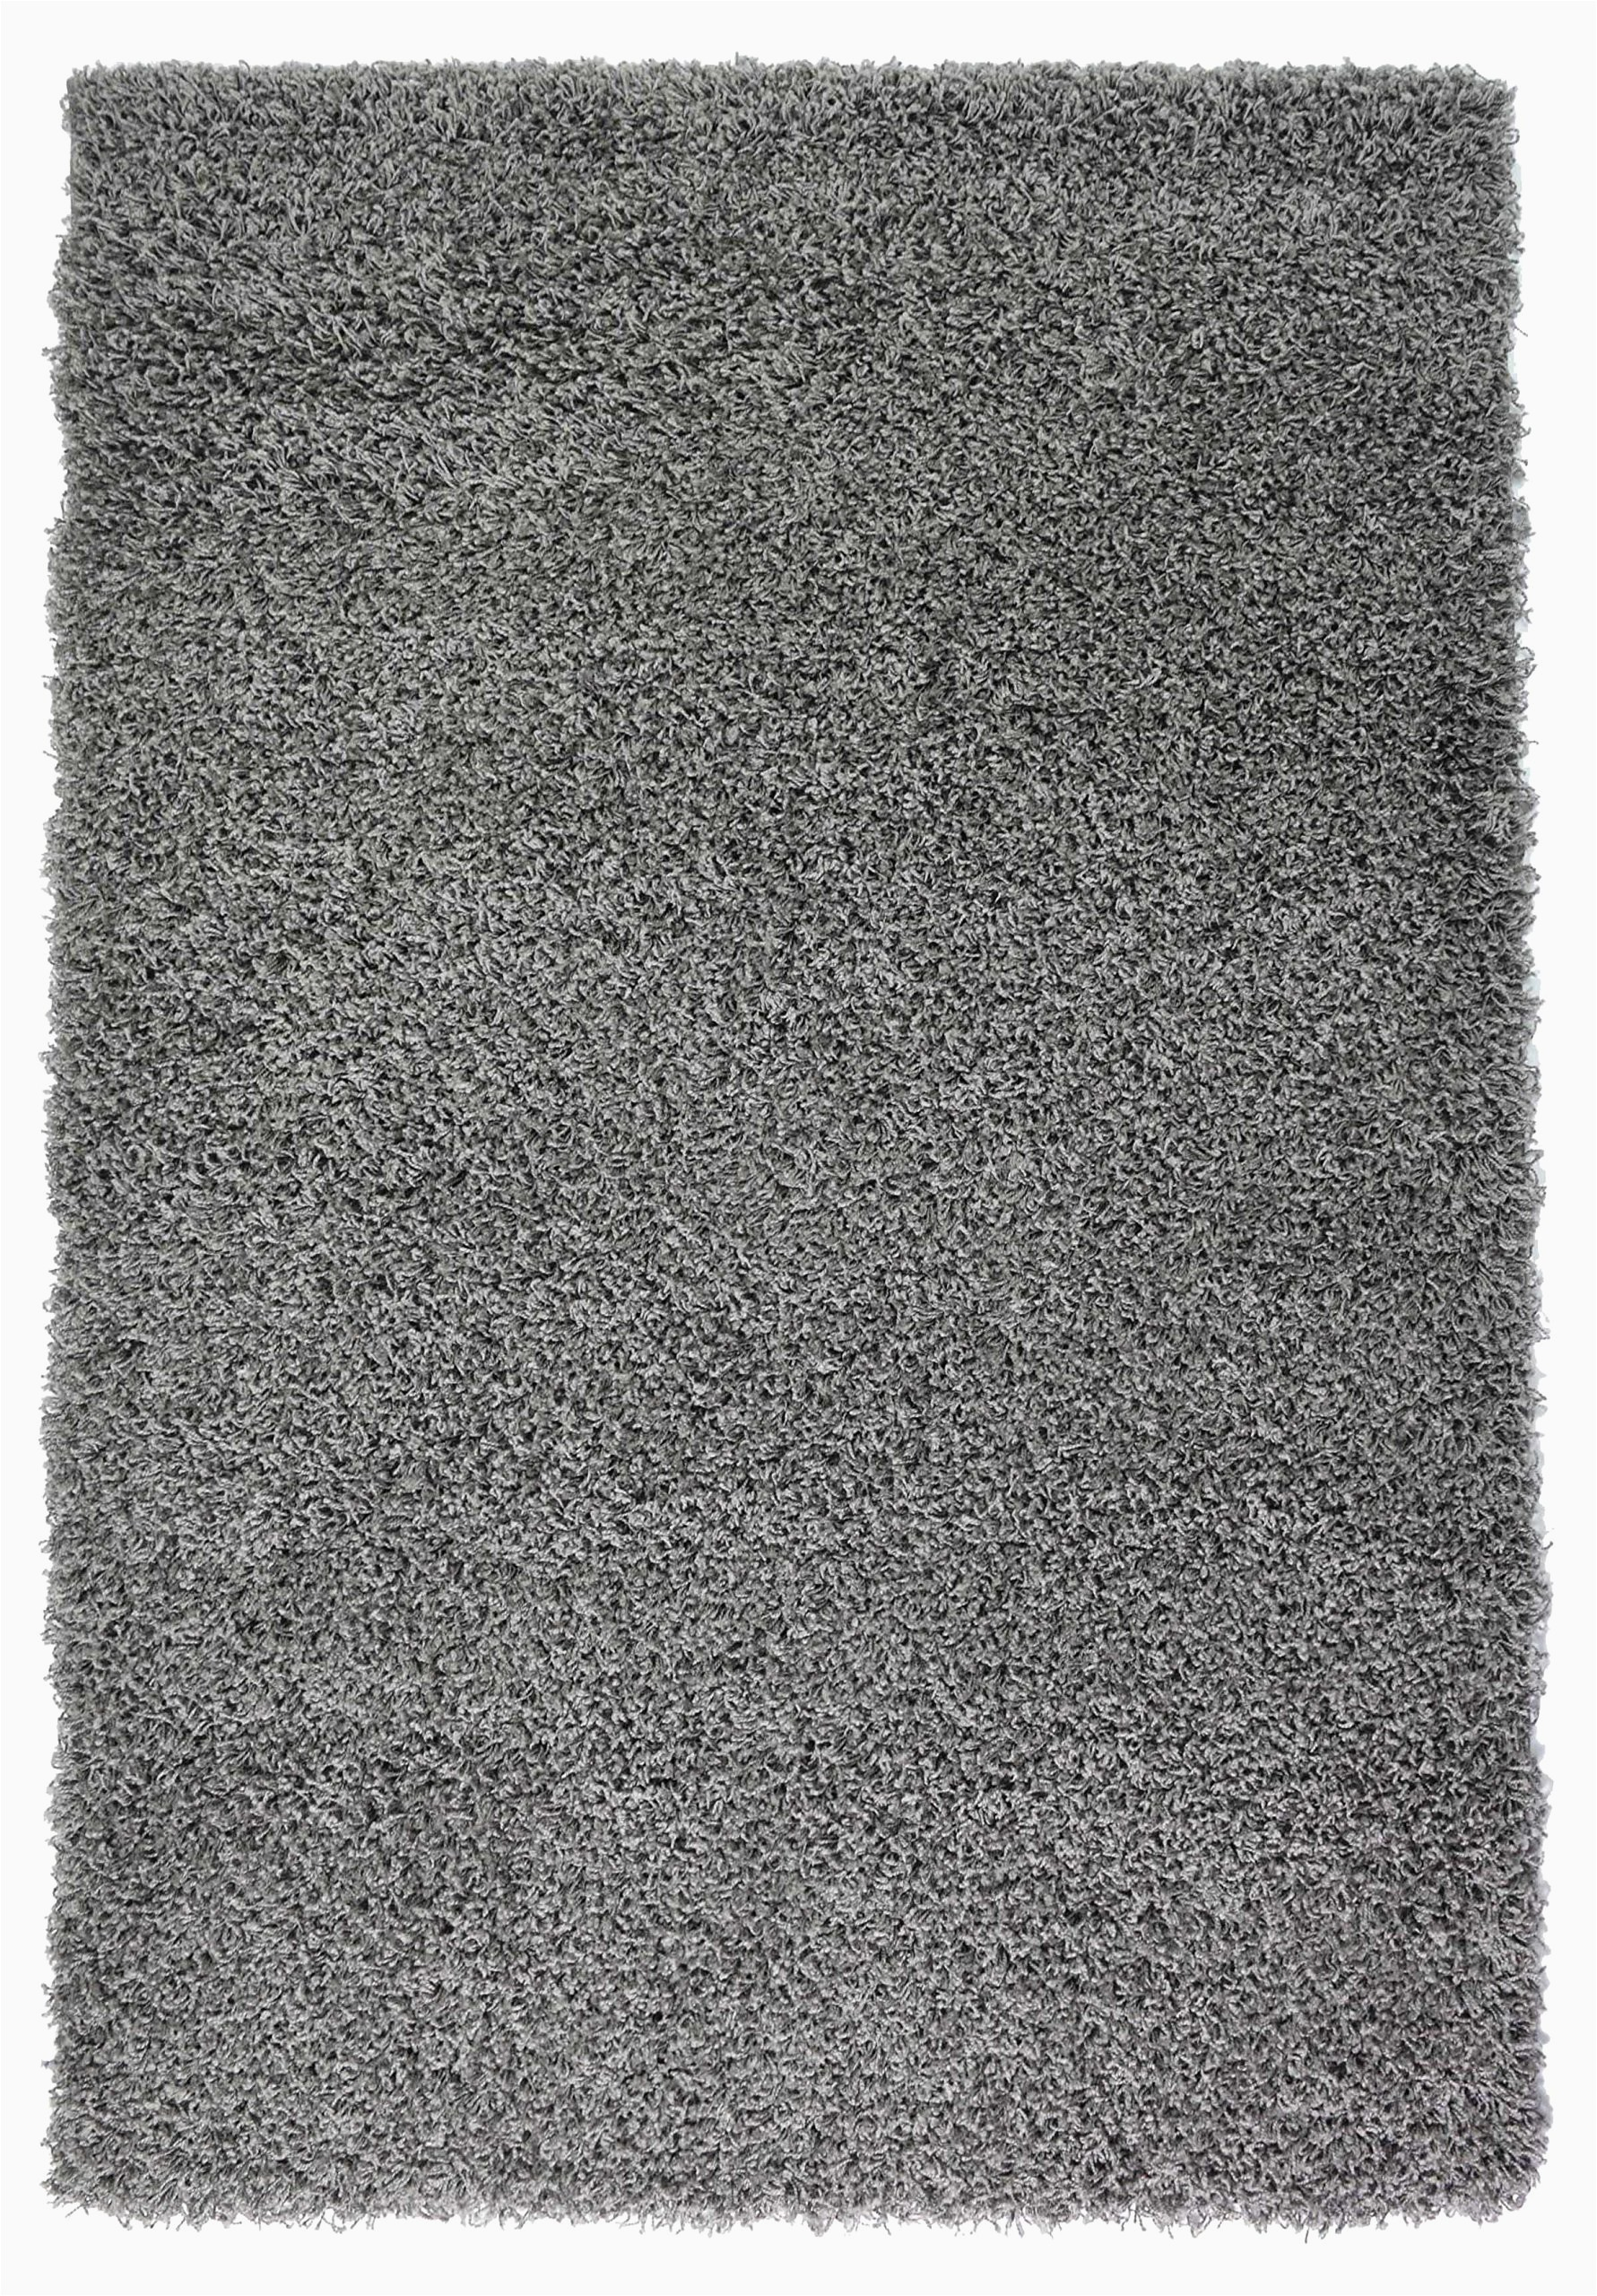 extra large rug 5cm thick shag pile soft shaggy area rugs modern carpet living room bedroom mats 160x230cm 5 3 x7 7 dark grey